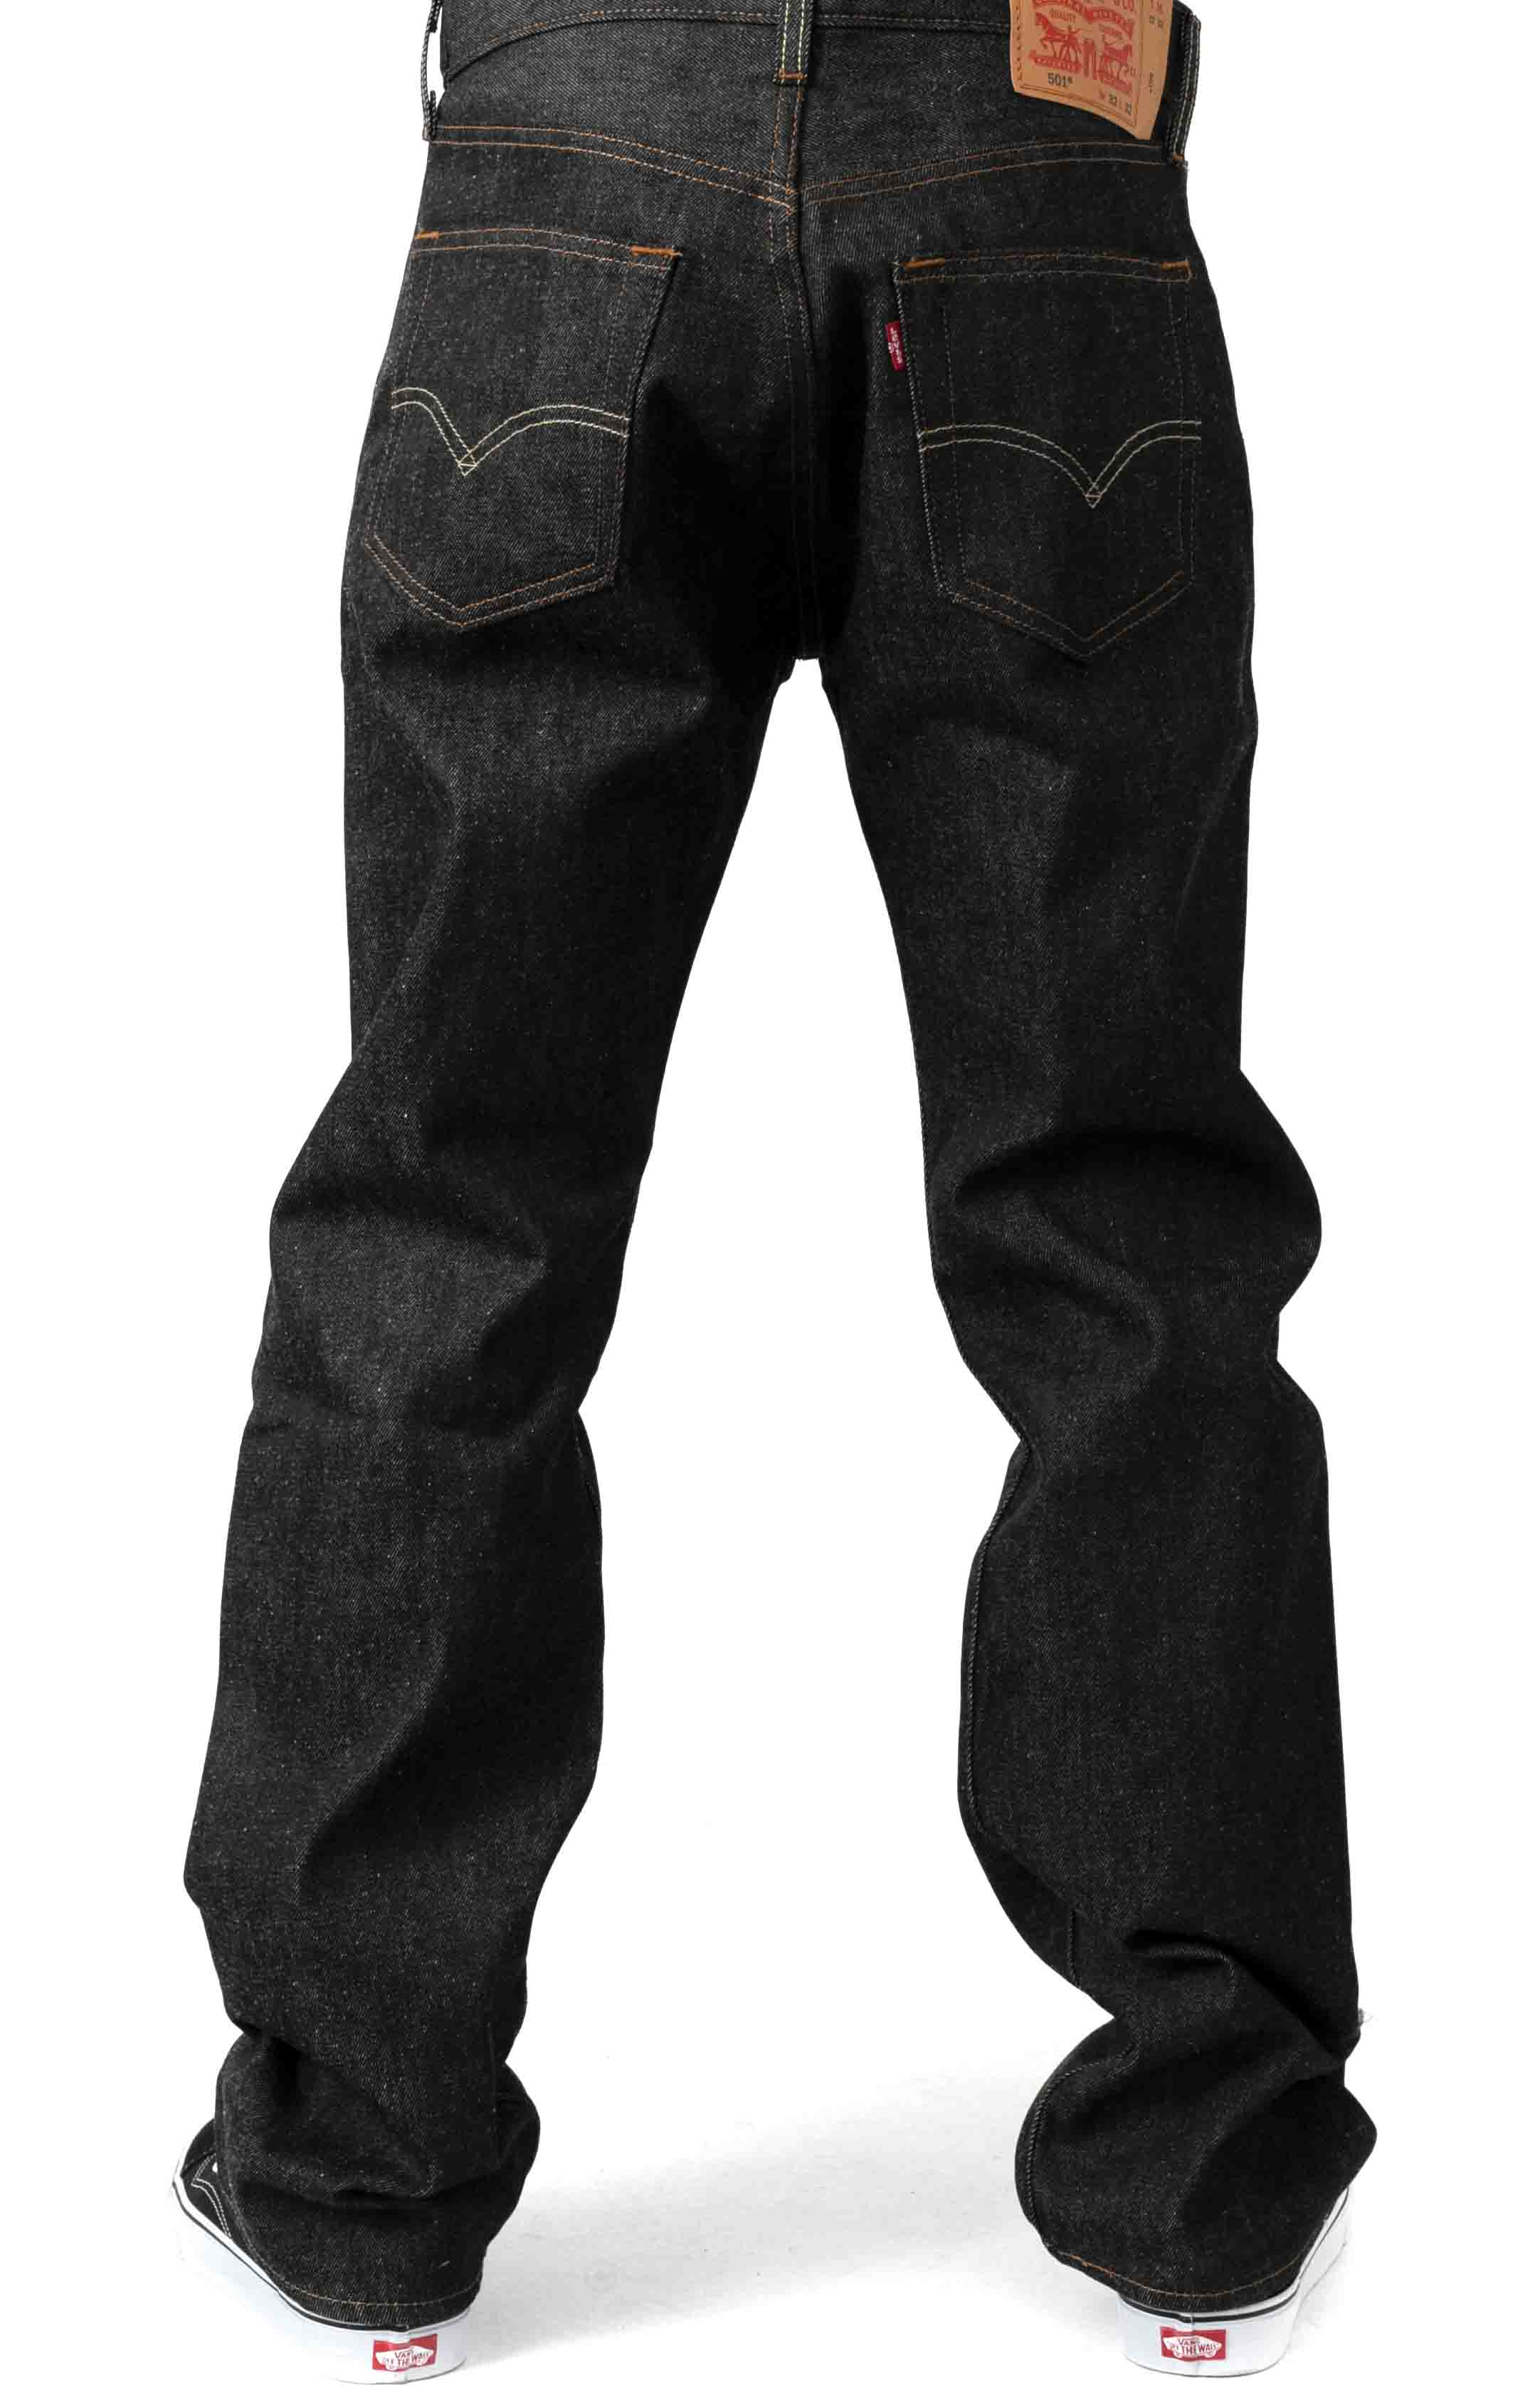 (501-0226) 501 Original Fit Jeans - Black STF  3